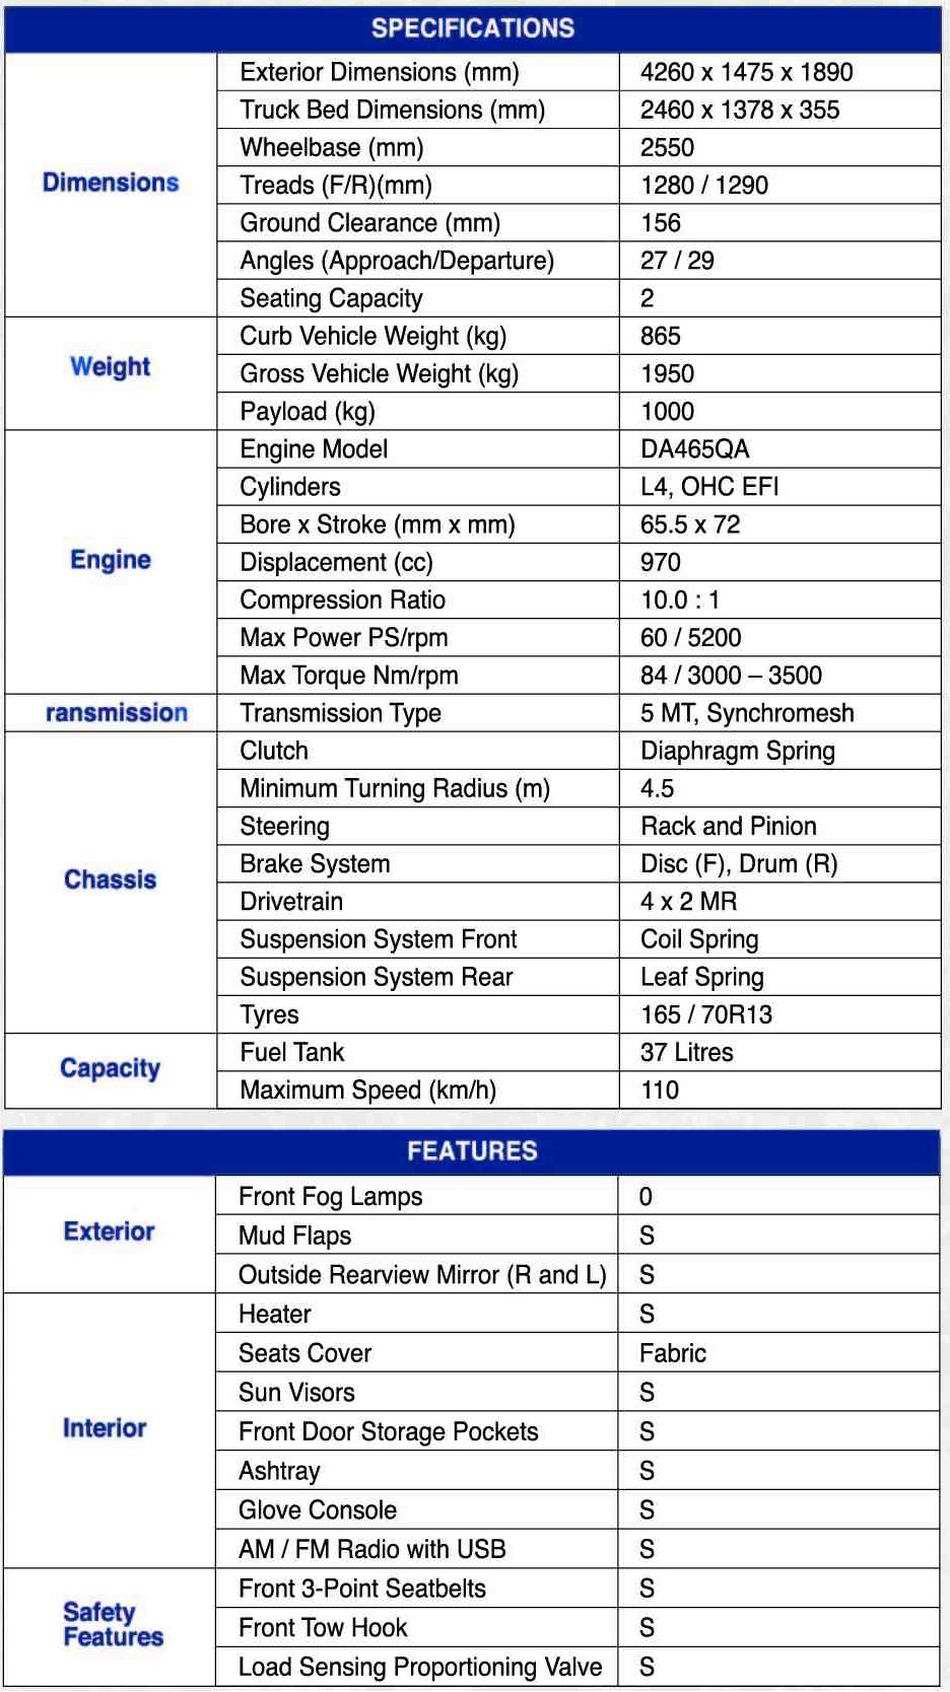 Carrier Specifications 1